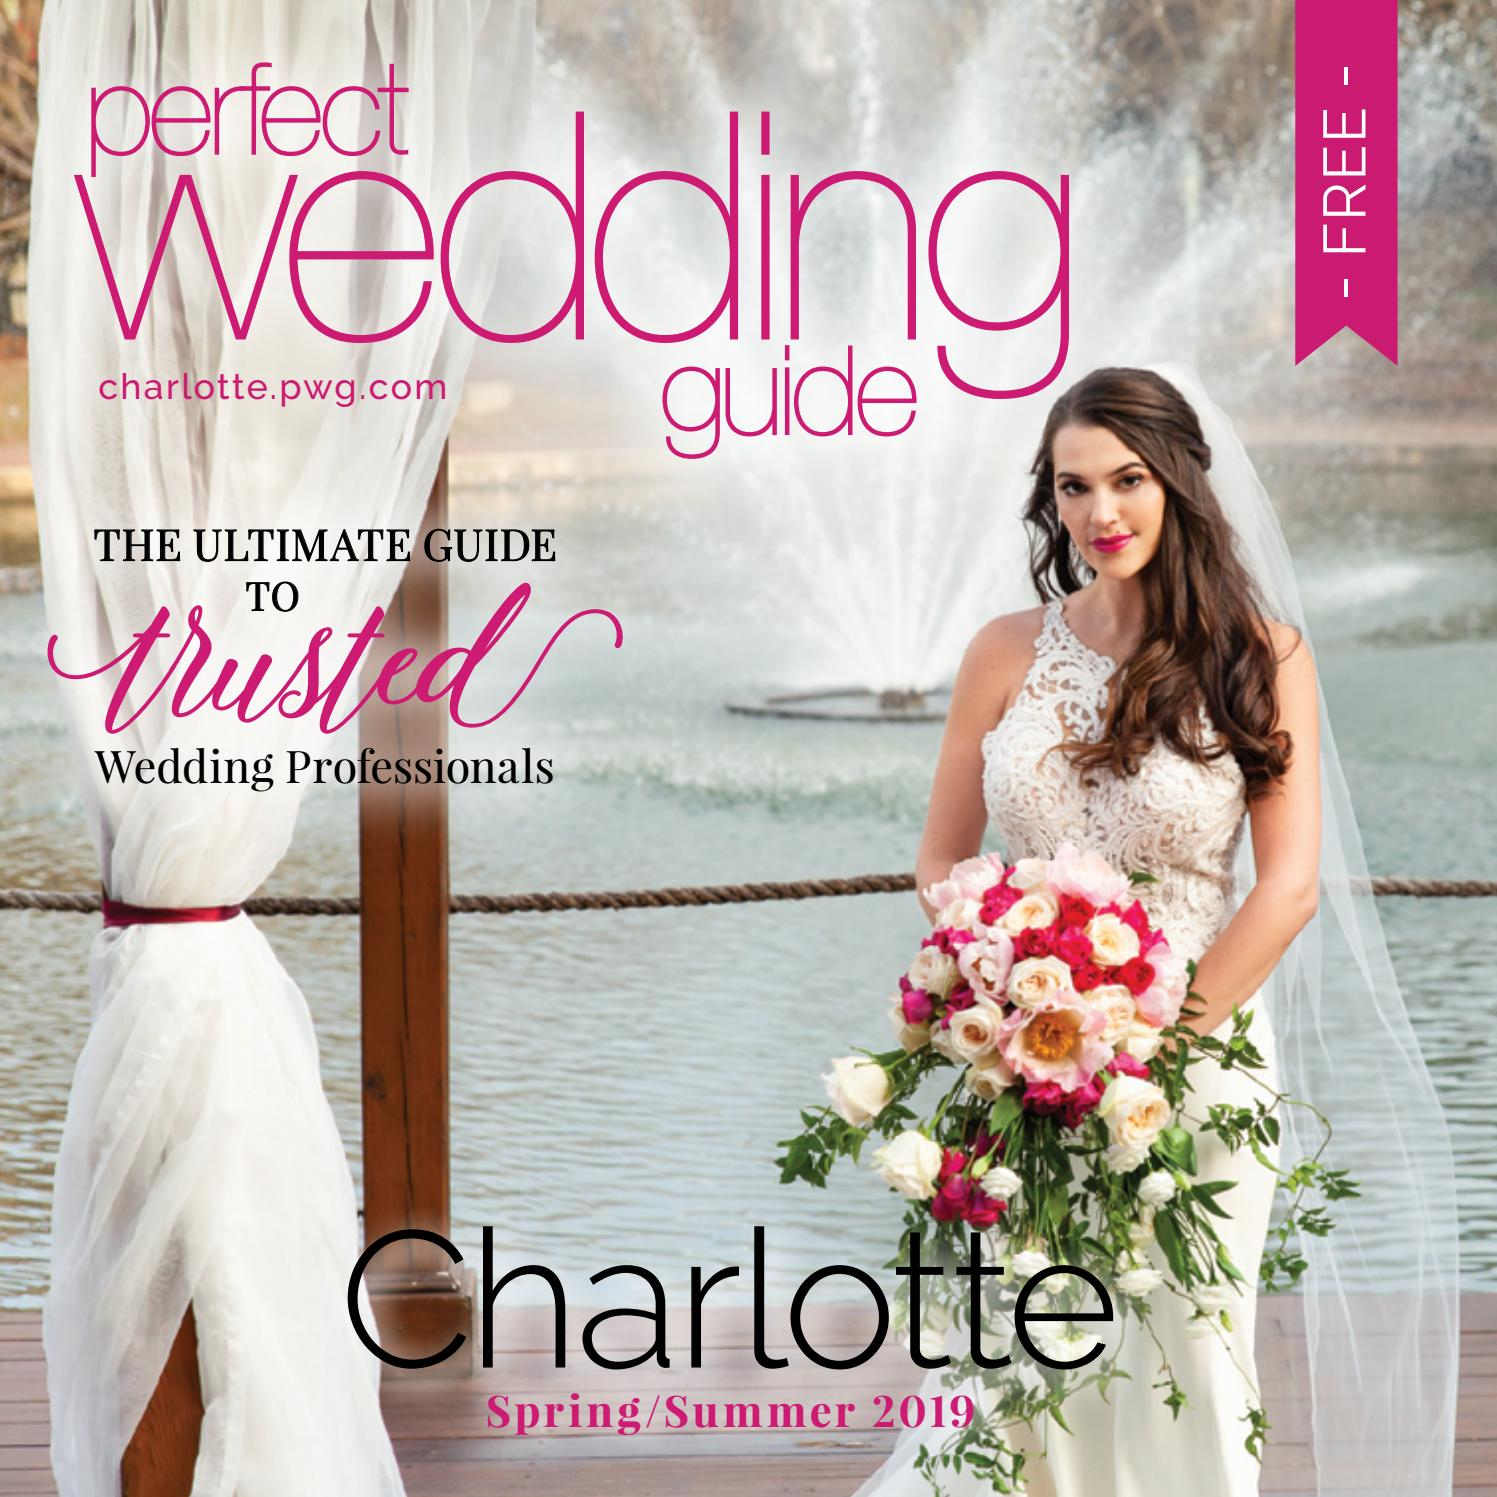 23e339a7a3e Perfect Wedding Guide Charlotte Spring Summer 2019 by Rick Caldwell - issuu